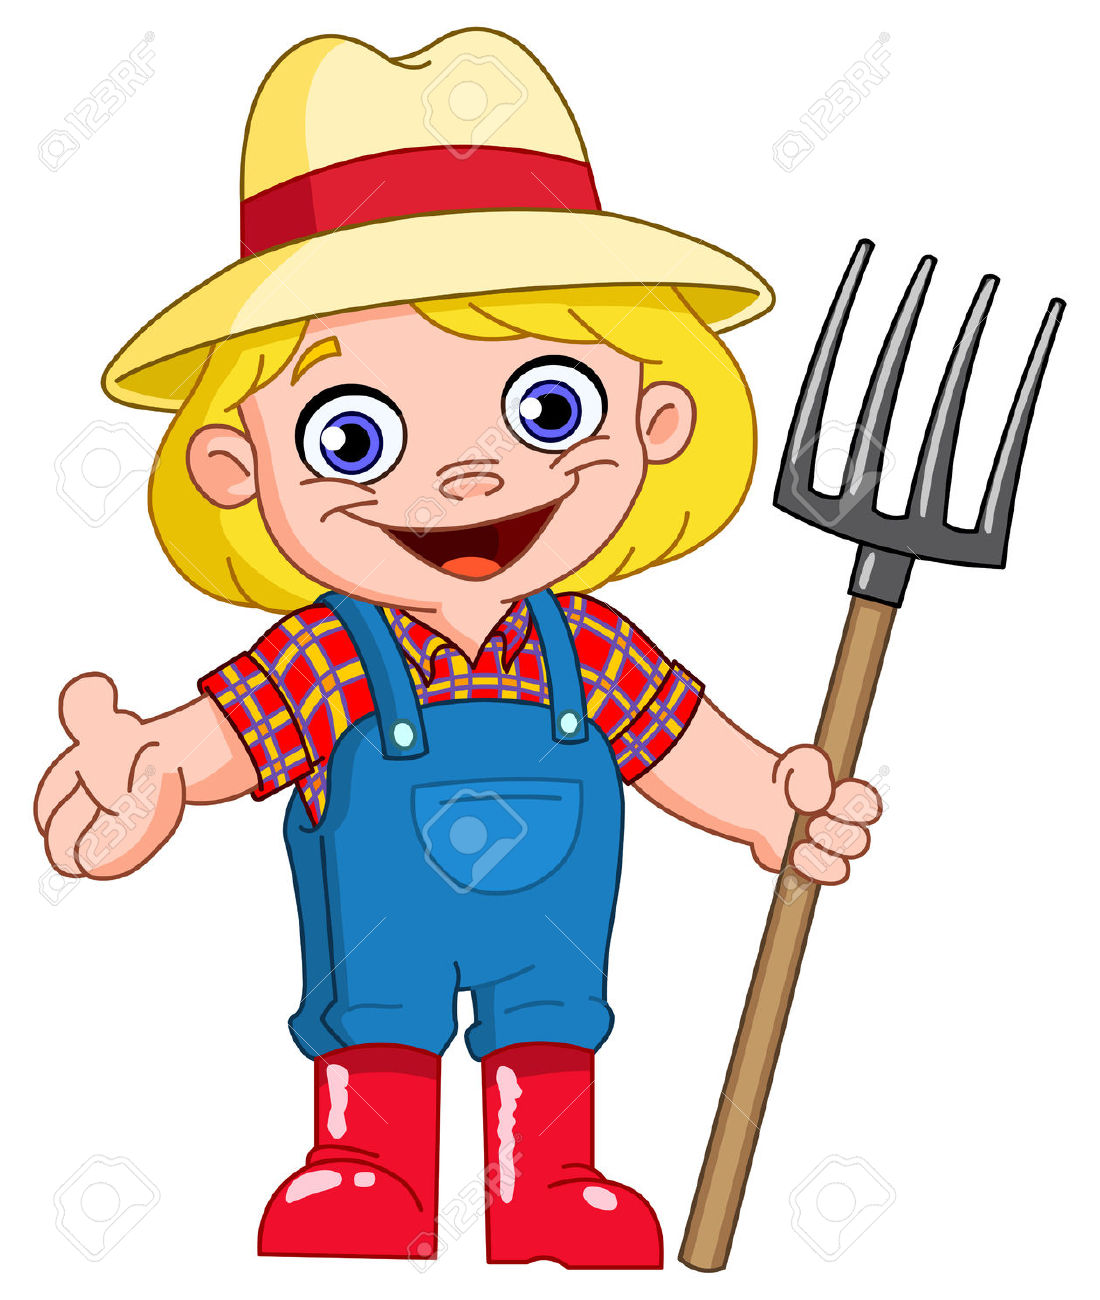 Free clipart farm girl images.